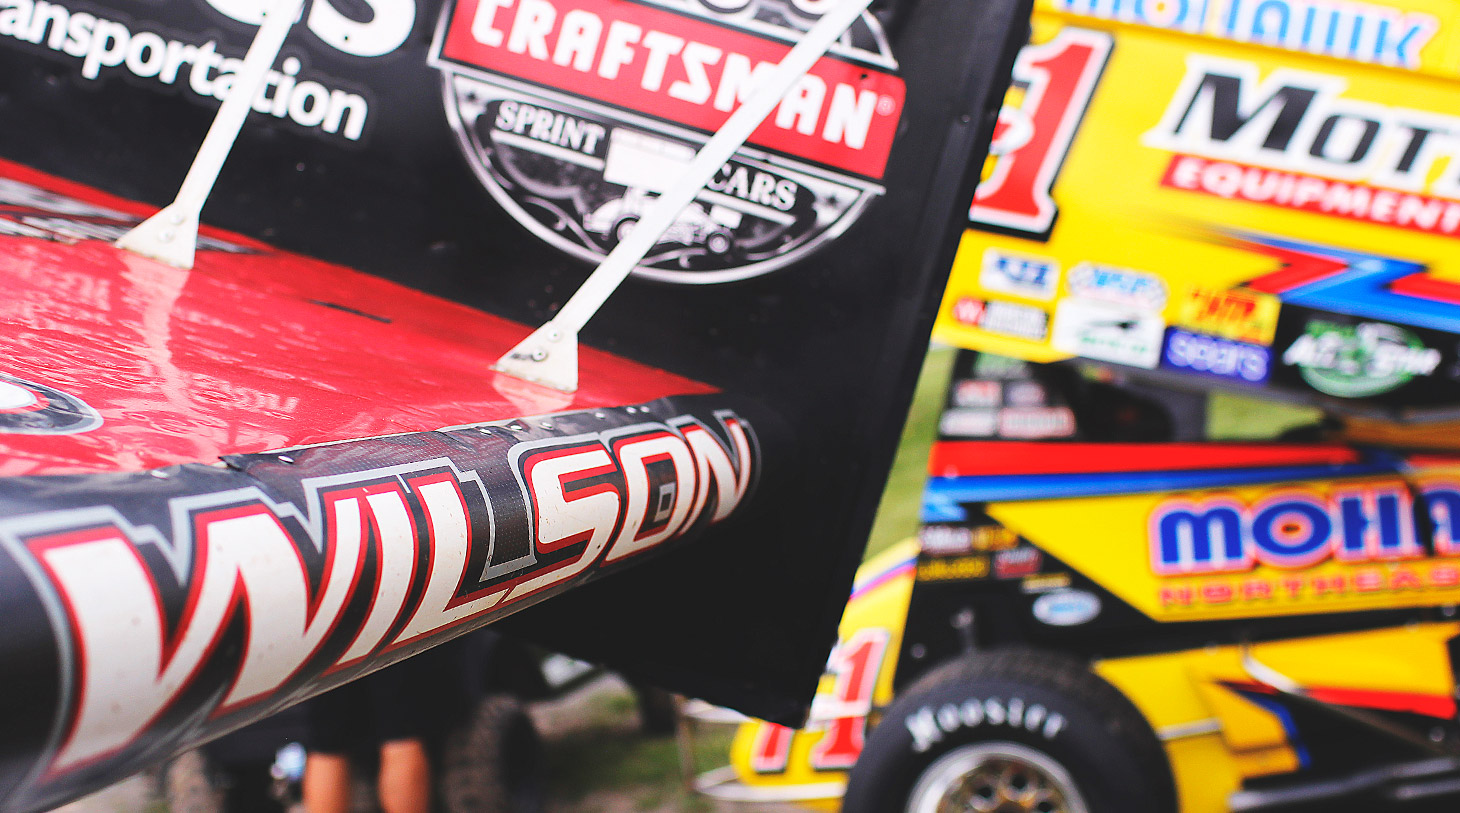 Greg Wilson currently leads the Rookie of the Year standing with The World of Outlaws